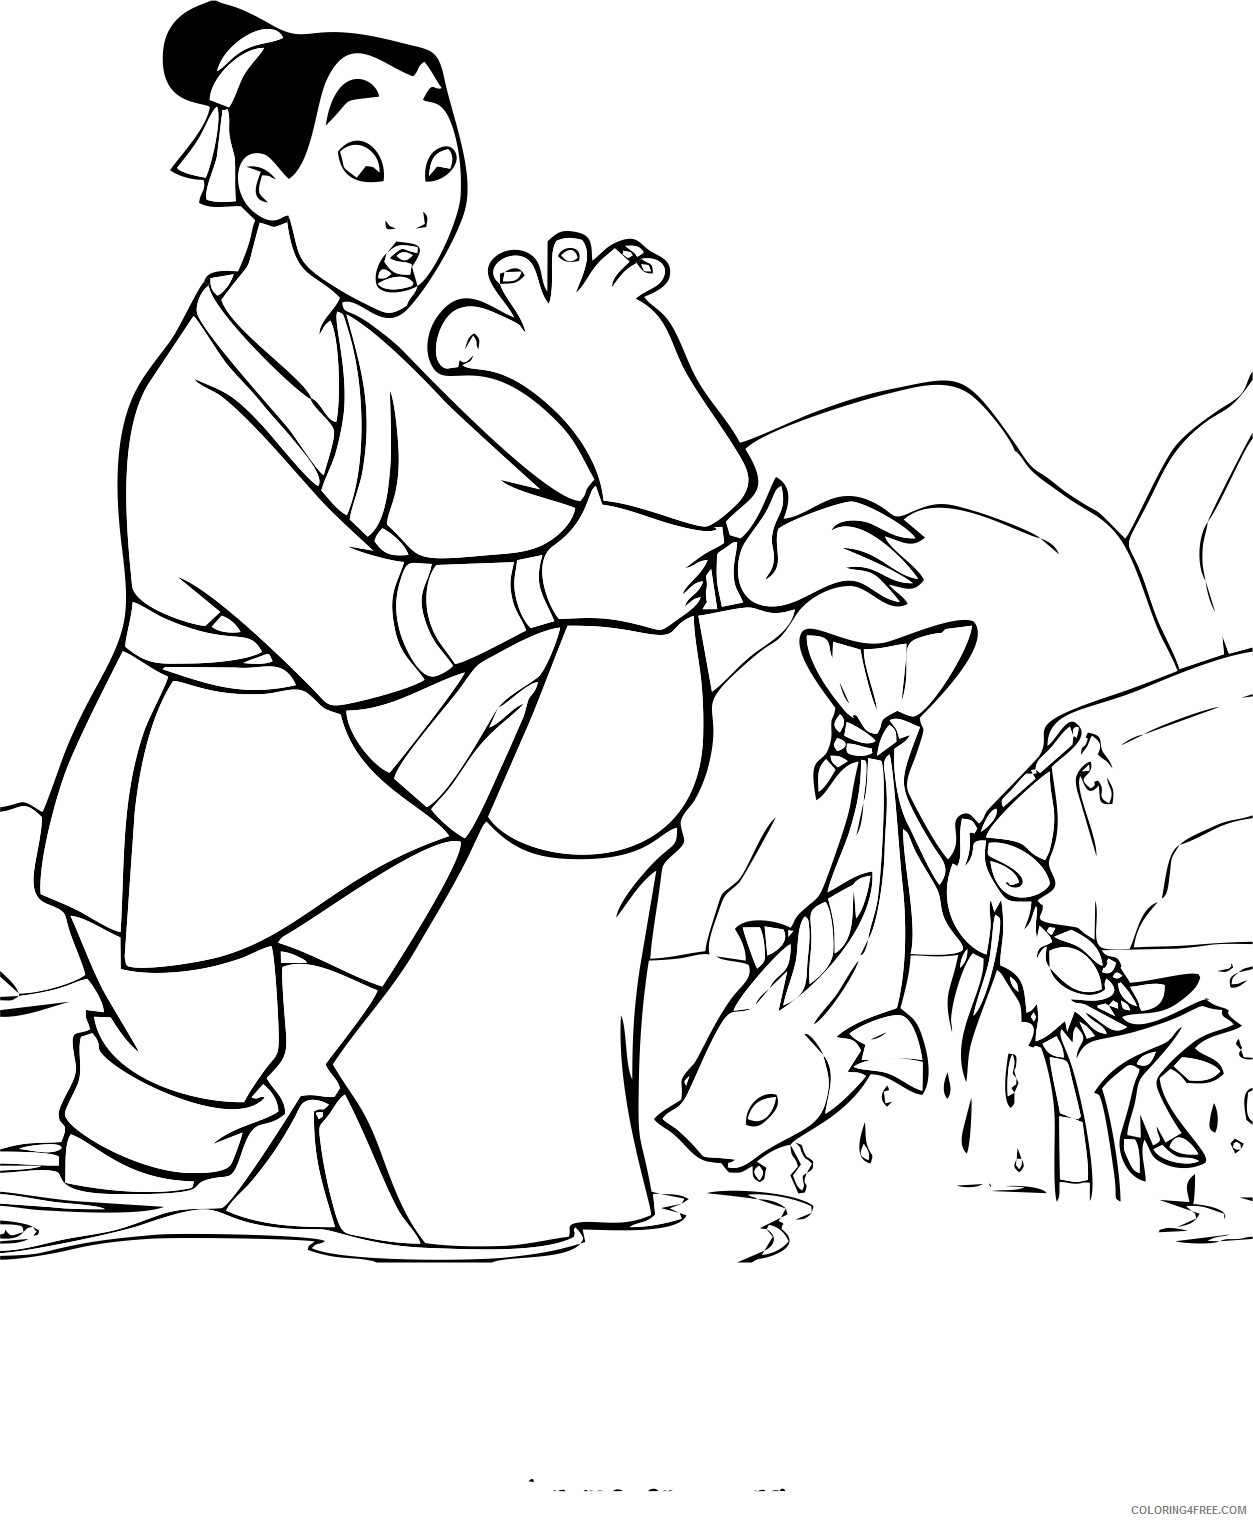 printable mulan coloring pages for kids Coloring4free